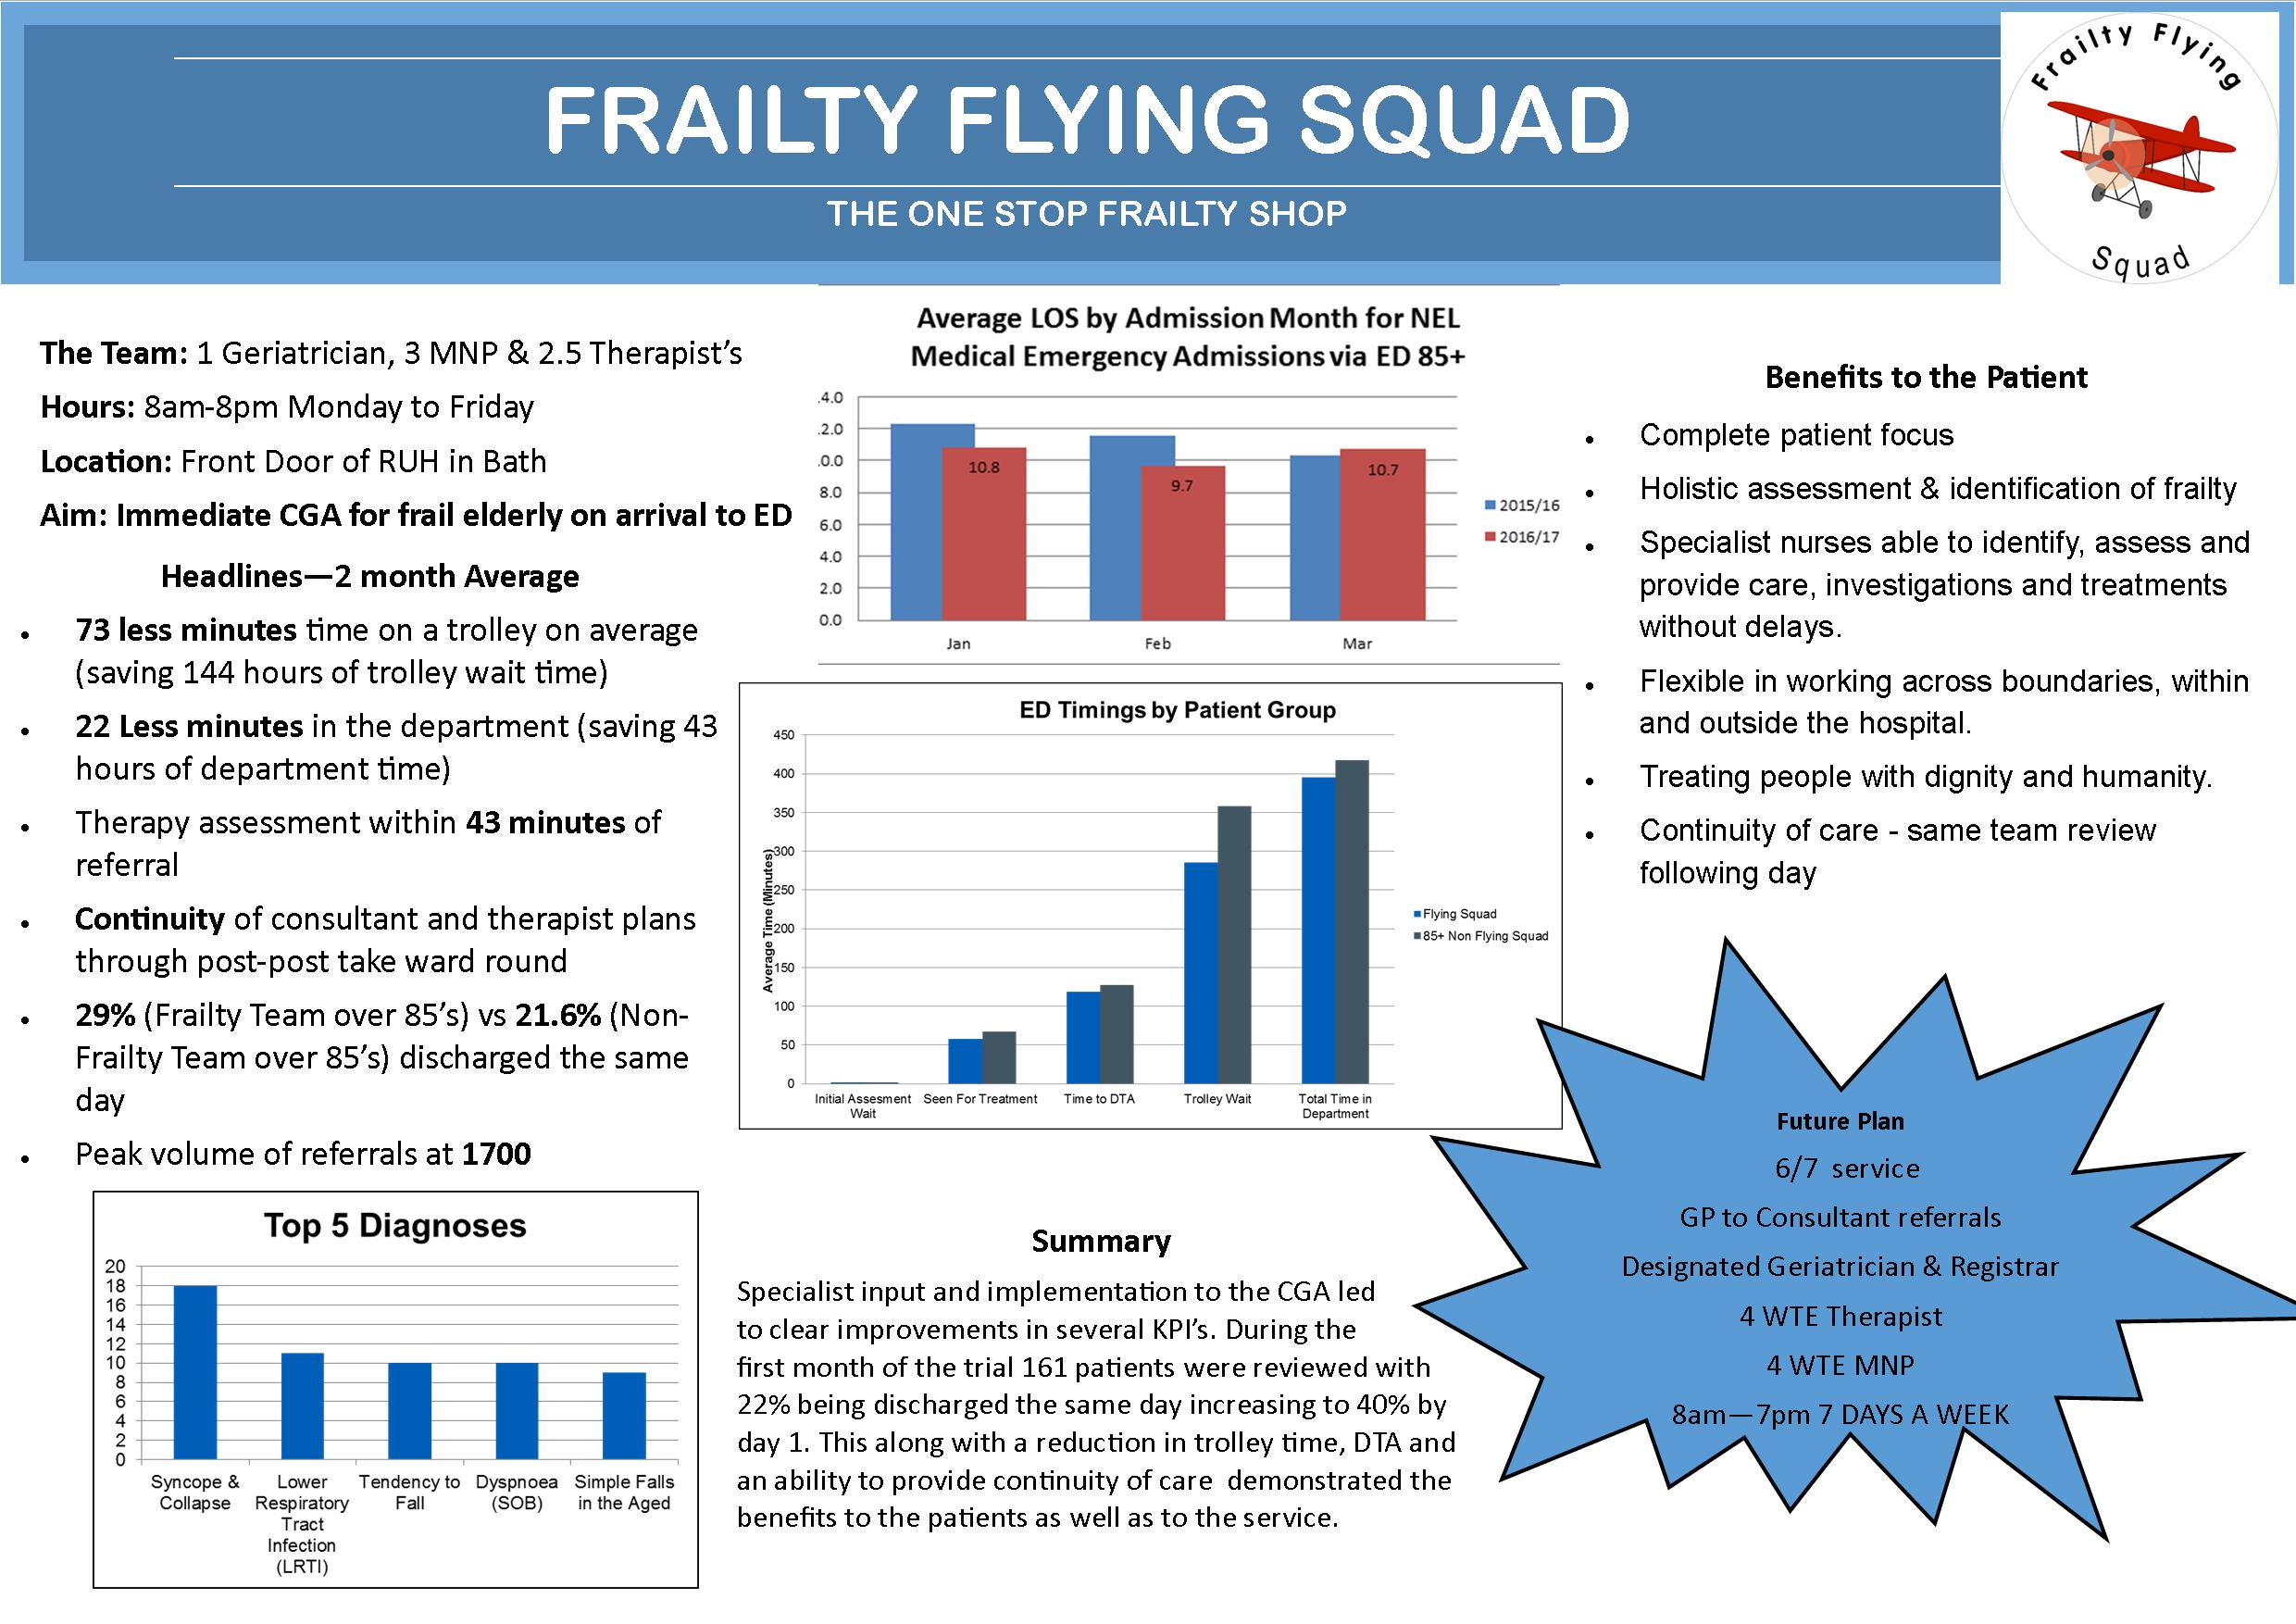 Frailty Flying Squad featured image